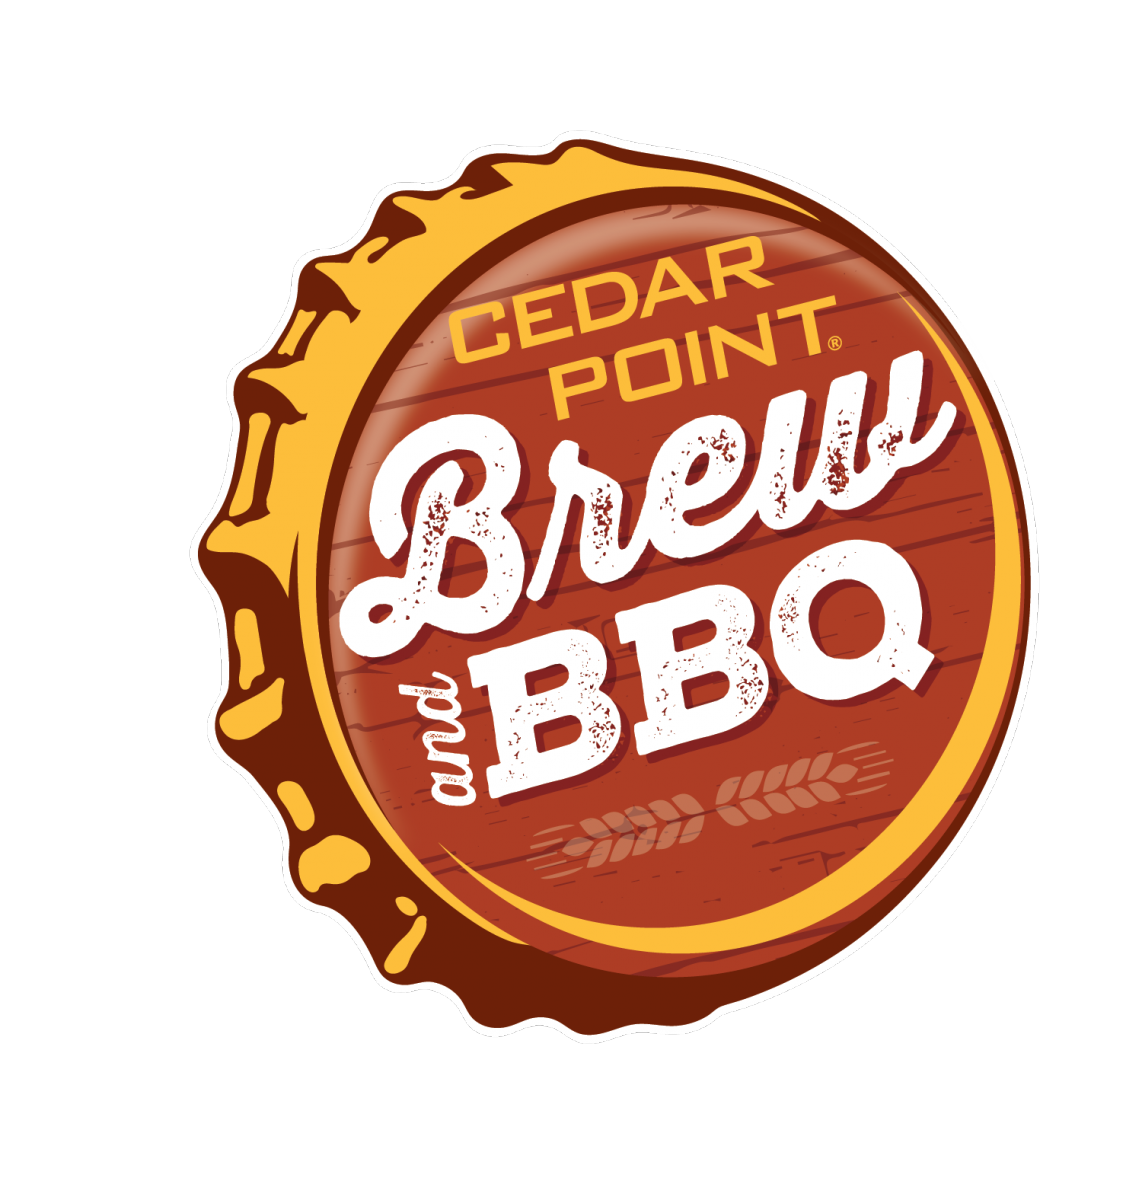 Cedar Point's Brew and BBQ